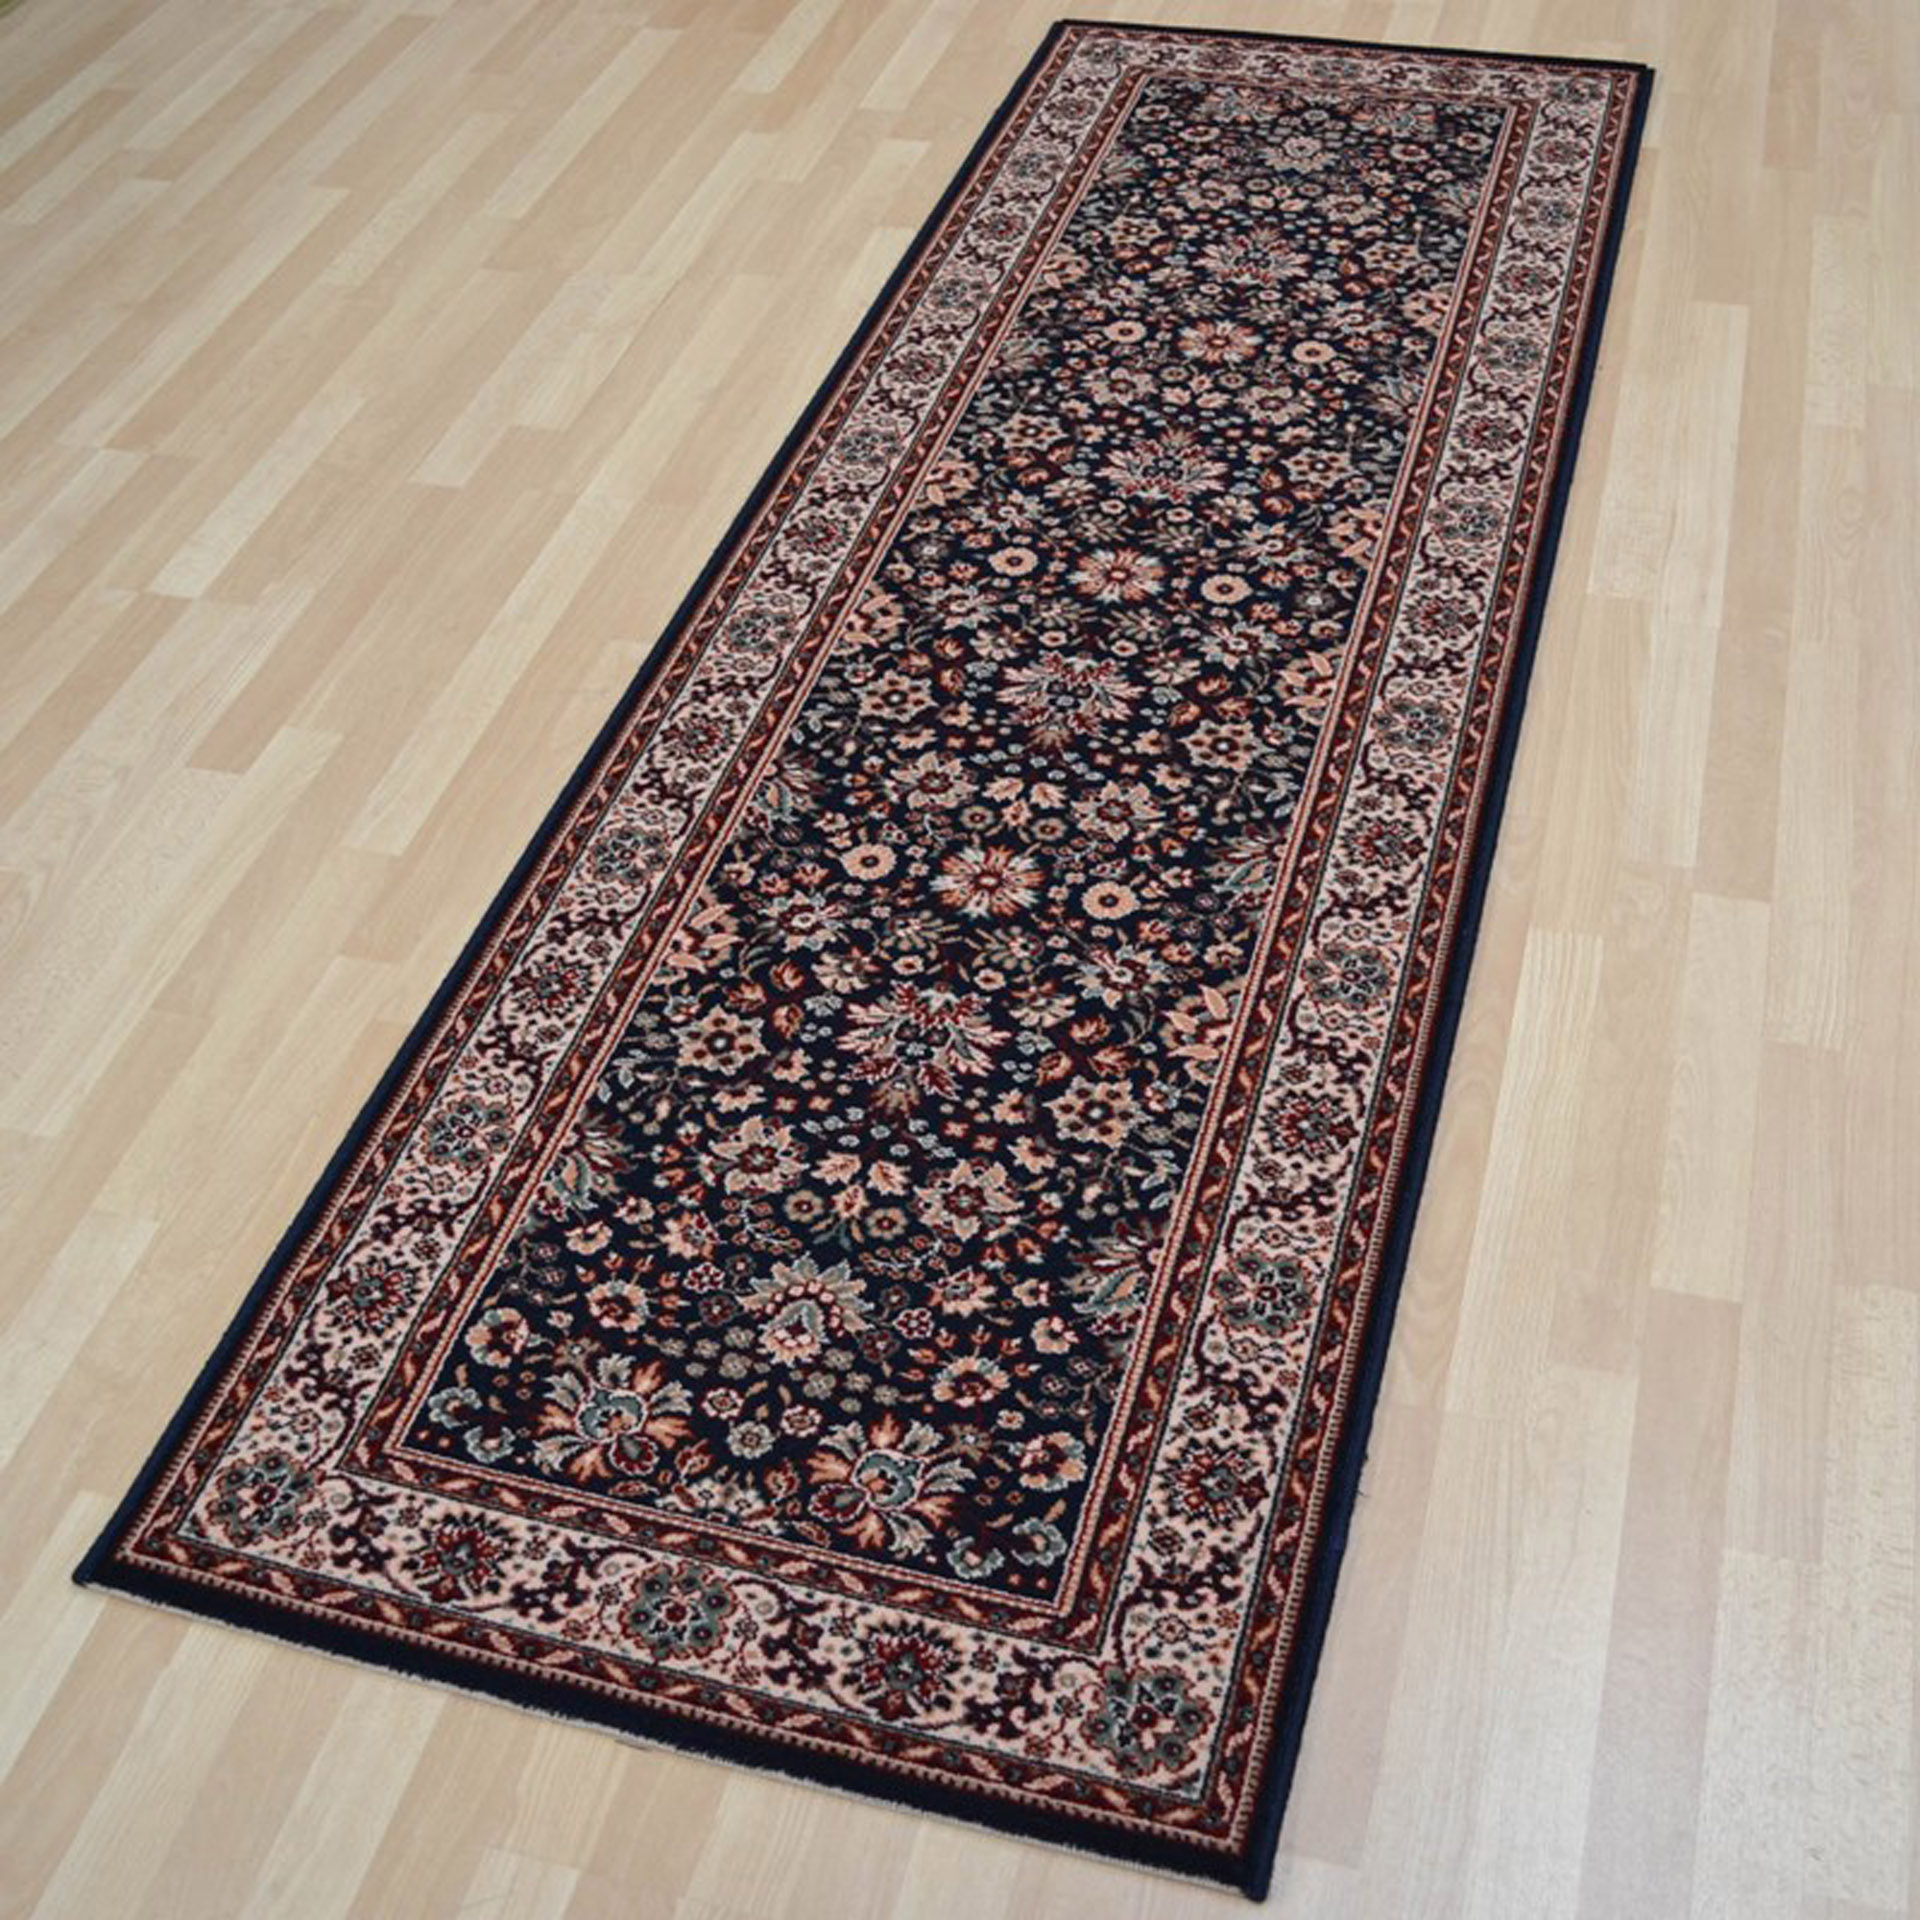 Lano Royal Runner 1561-509 Rug